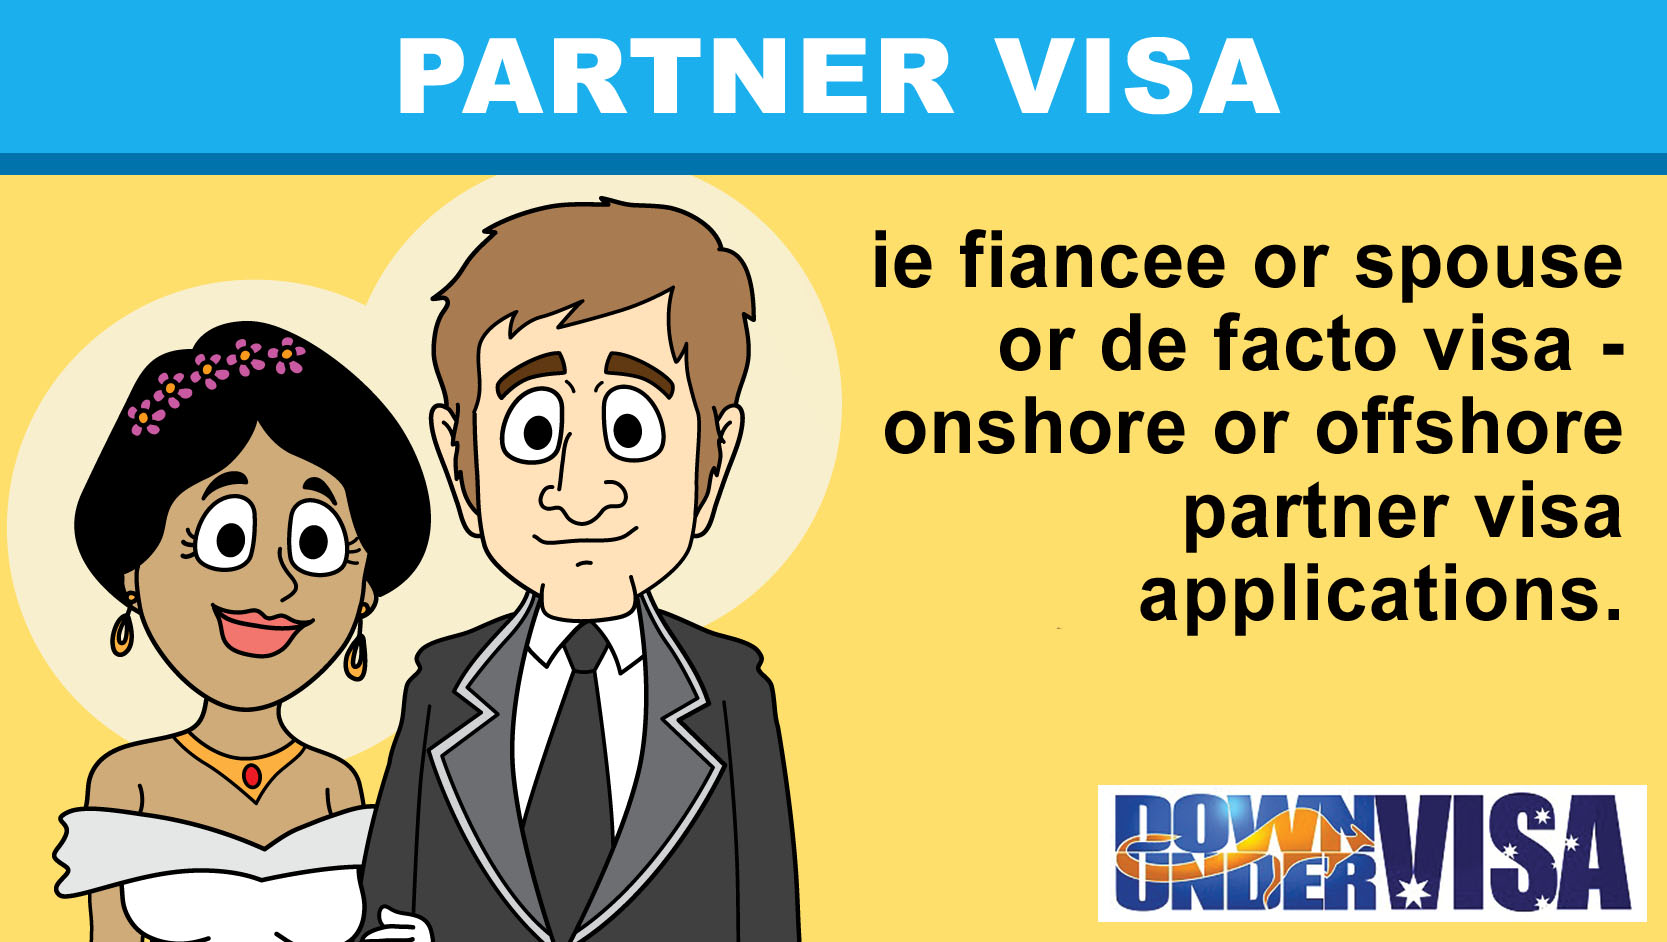 onshore partner visa during COVID-19